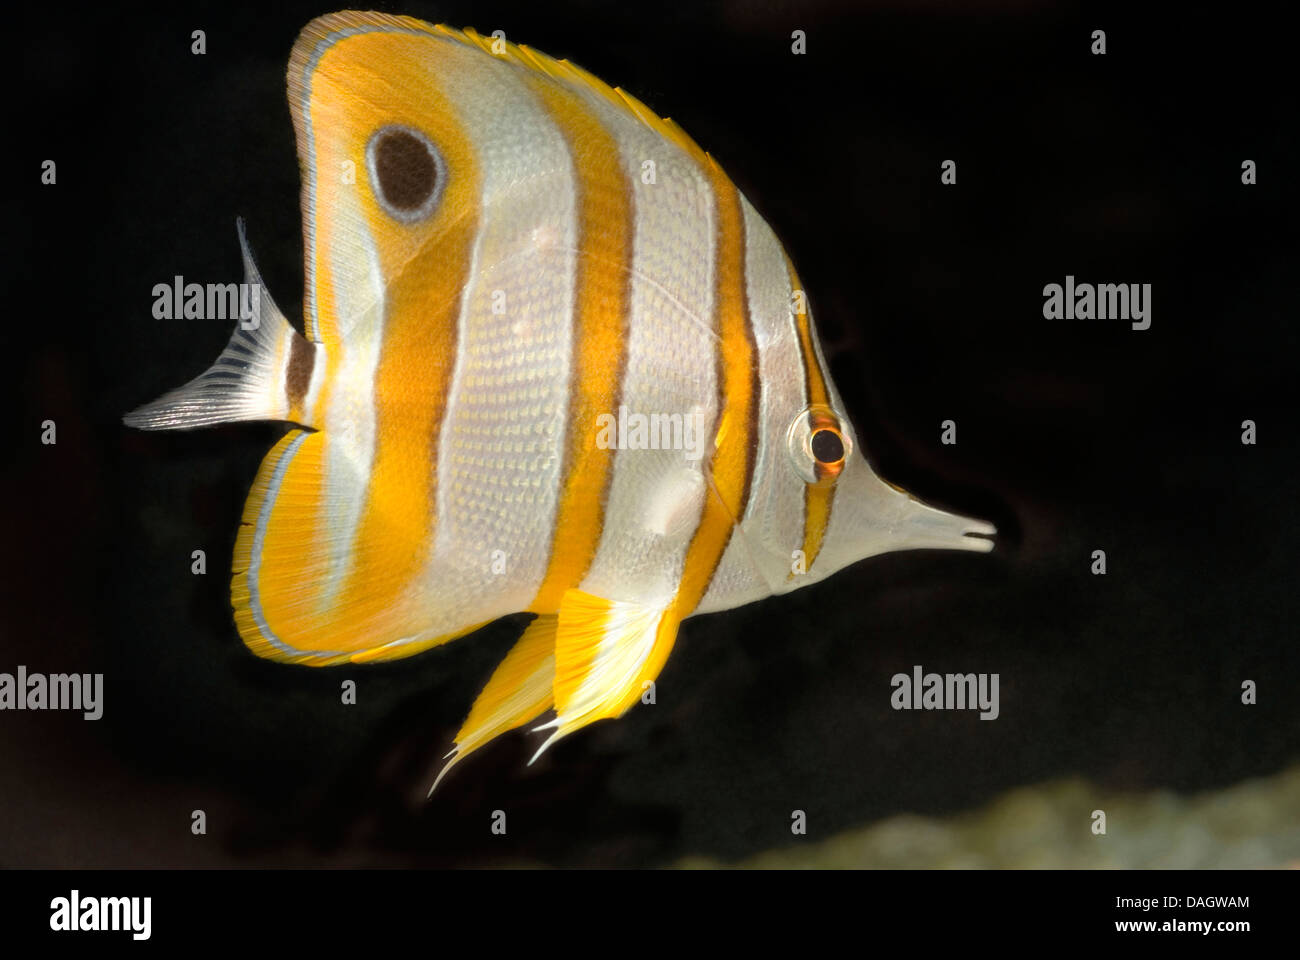 copper-banded butterflyfish, copperband butterflyfish, long-nosed butterflyfish, beaked coralfish (Chelmon rostratus), - Stock Image